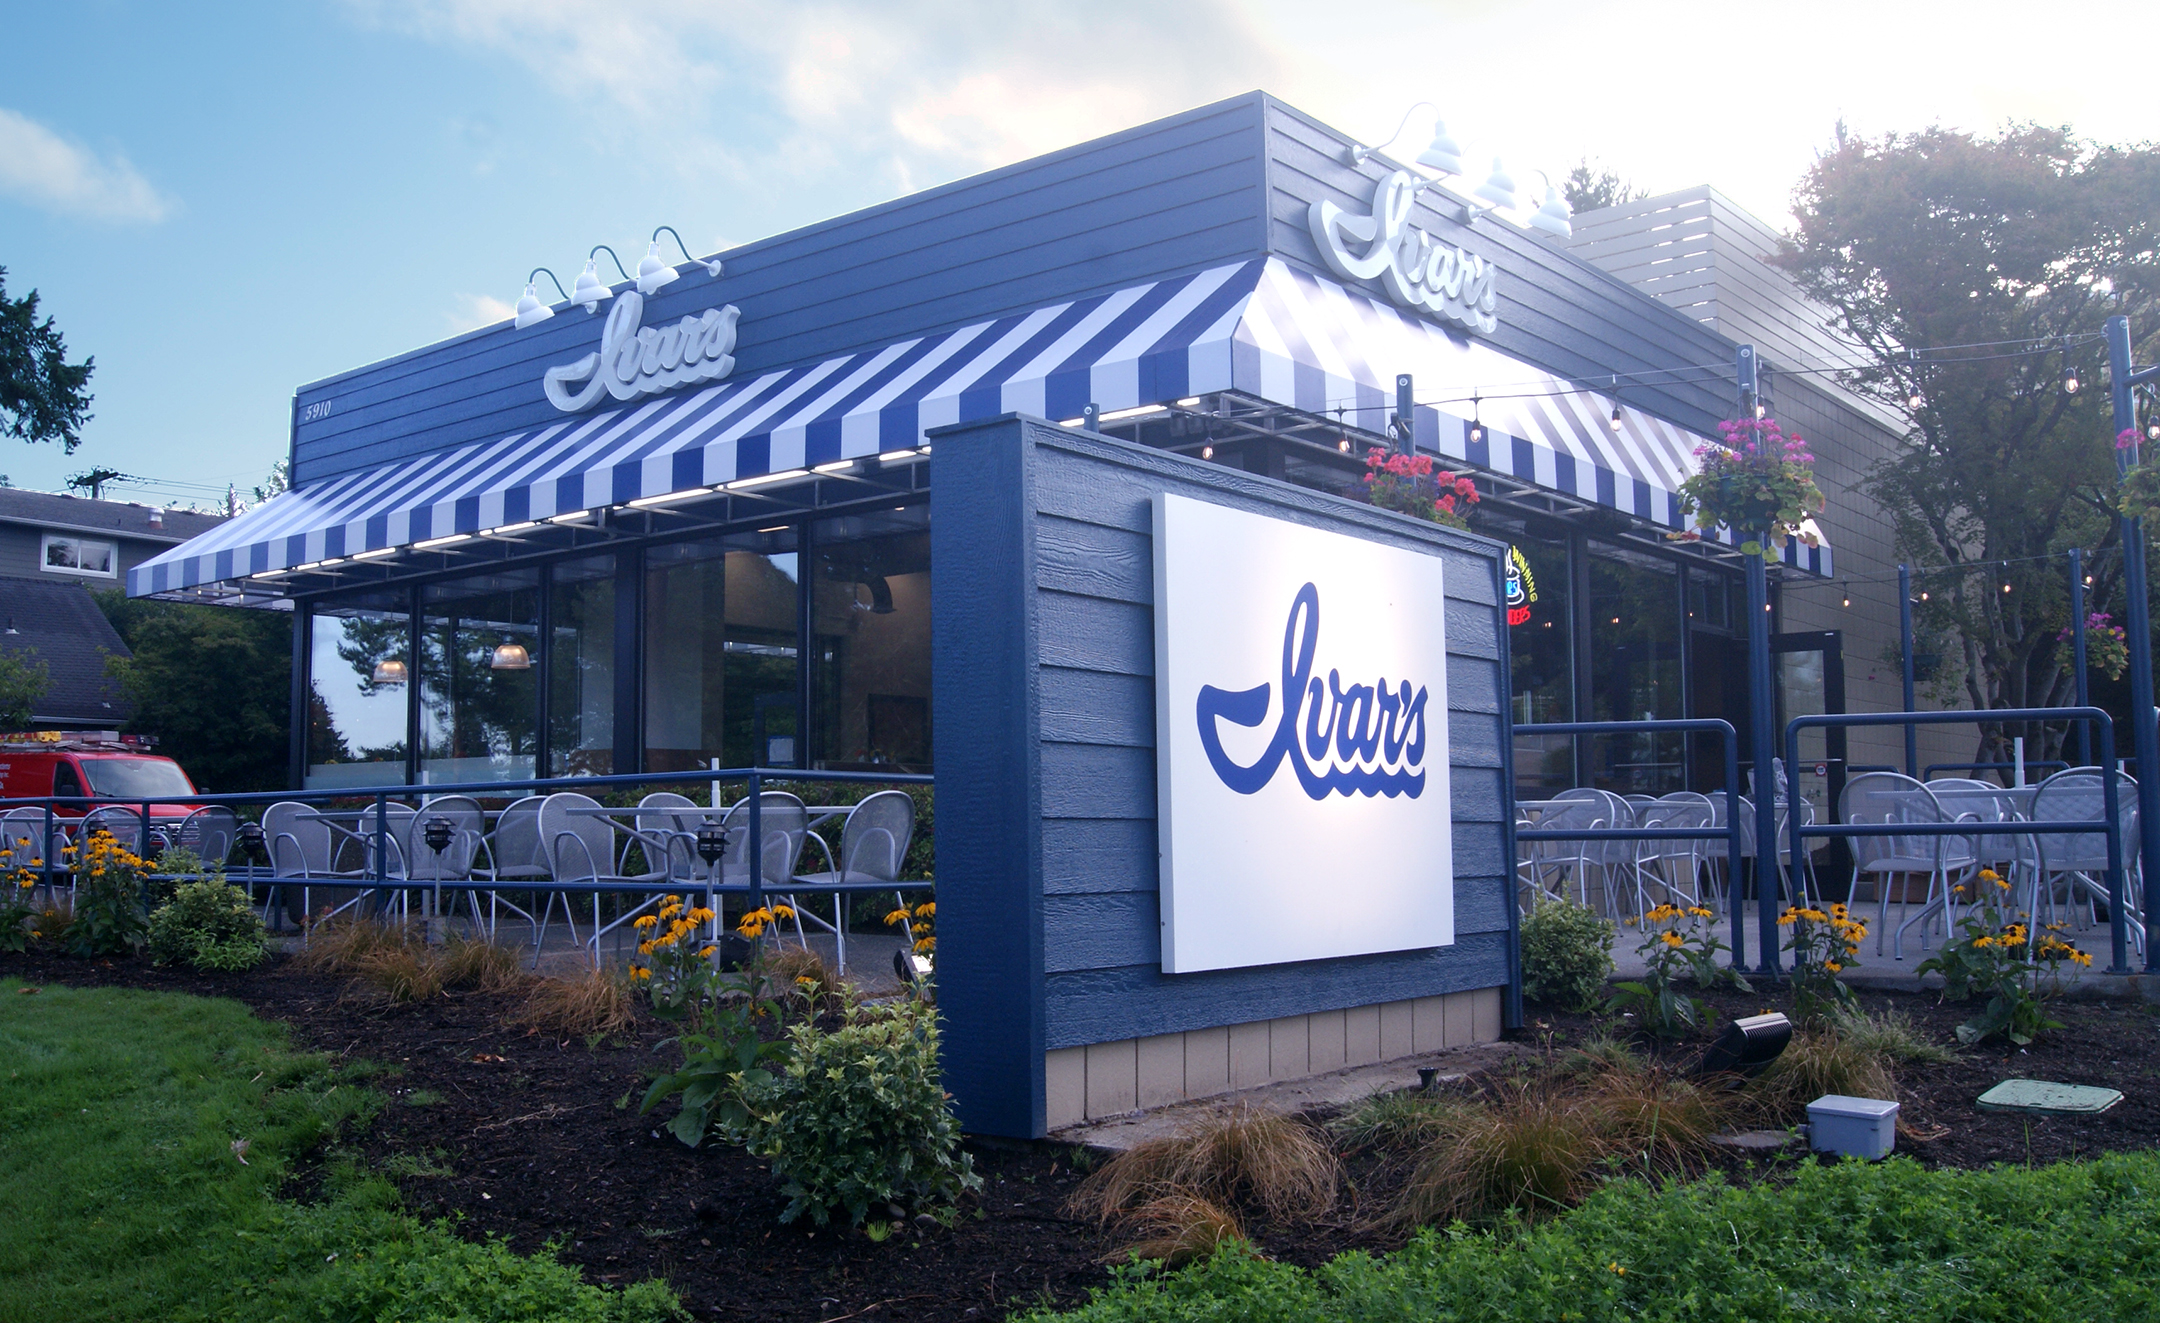 A sunny, exterior view of Ivar's Seafood Bar in Kirkland, with patio seating and the chain's signature white and blue colors.